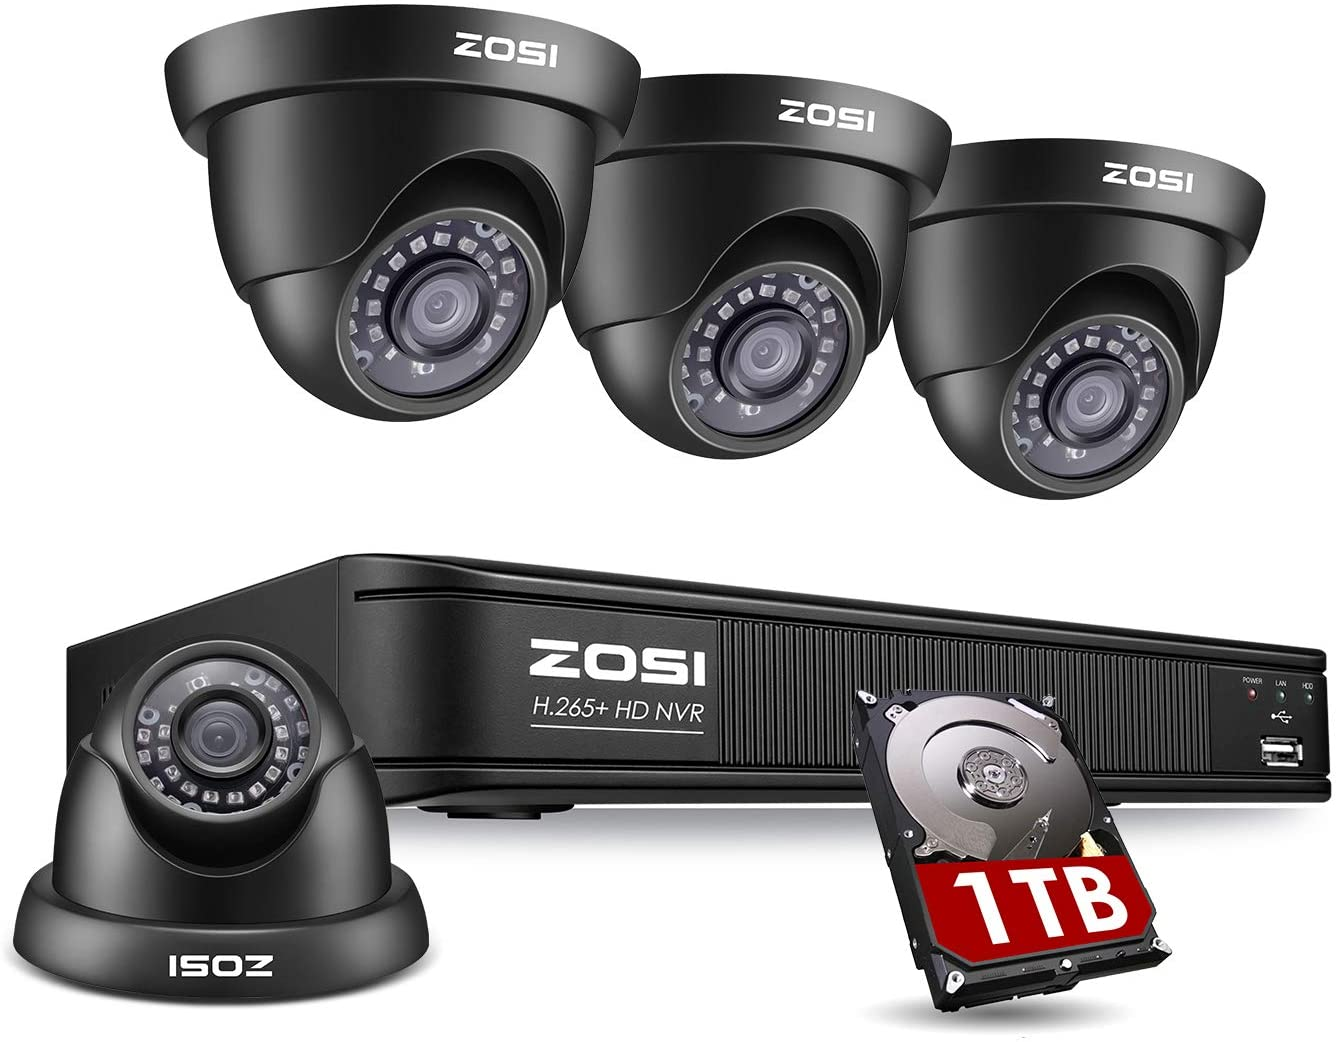 ZOSI 1080p H.265+ PoE Security Camera Systems Outdoor Indoor,5MP 8 Channel PoE NVR Recorder and (4) 1080p Surveillance CCTV Dome Cameras with Long Night Vision (1TB Hard Drive Built-in)